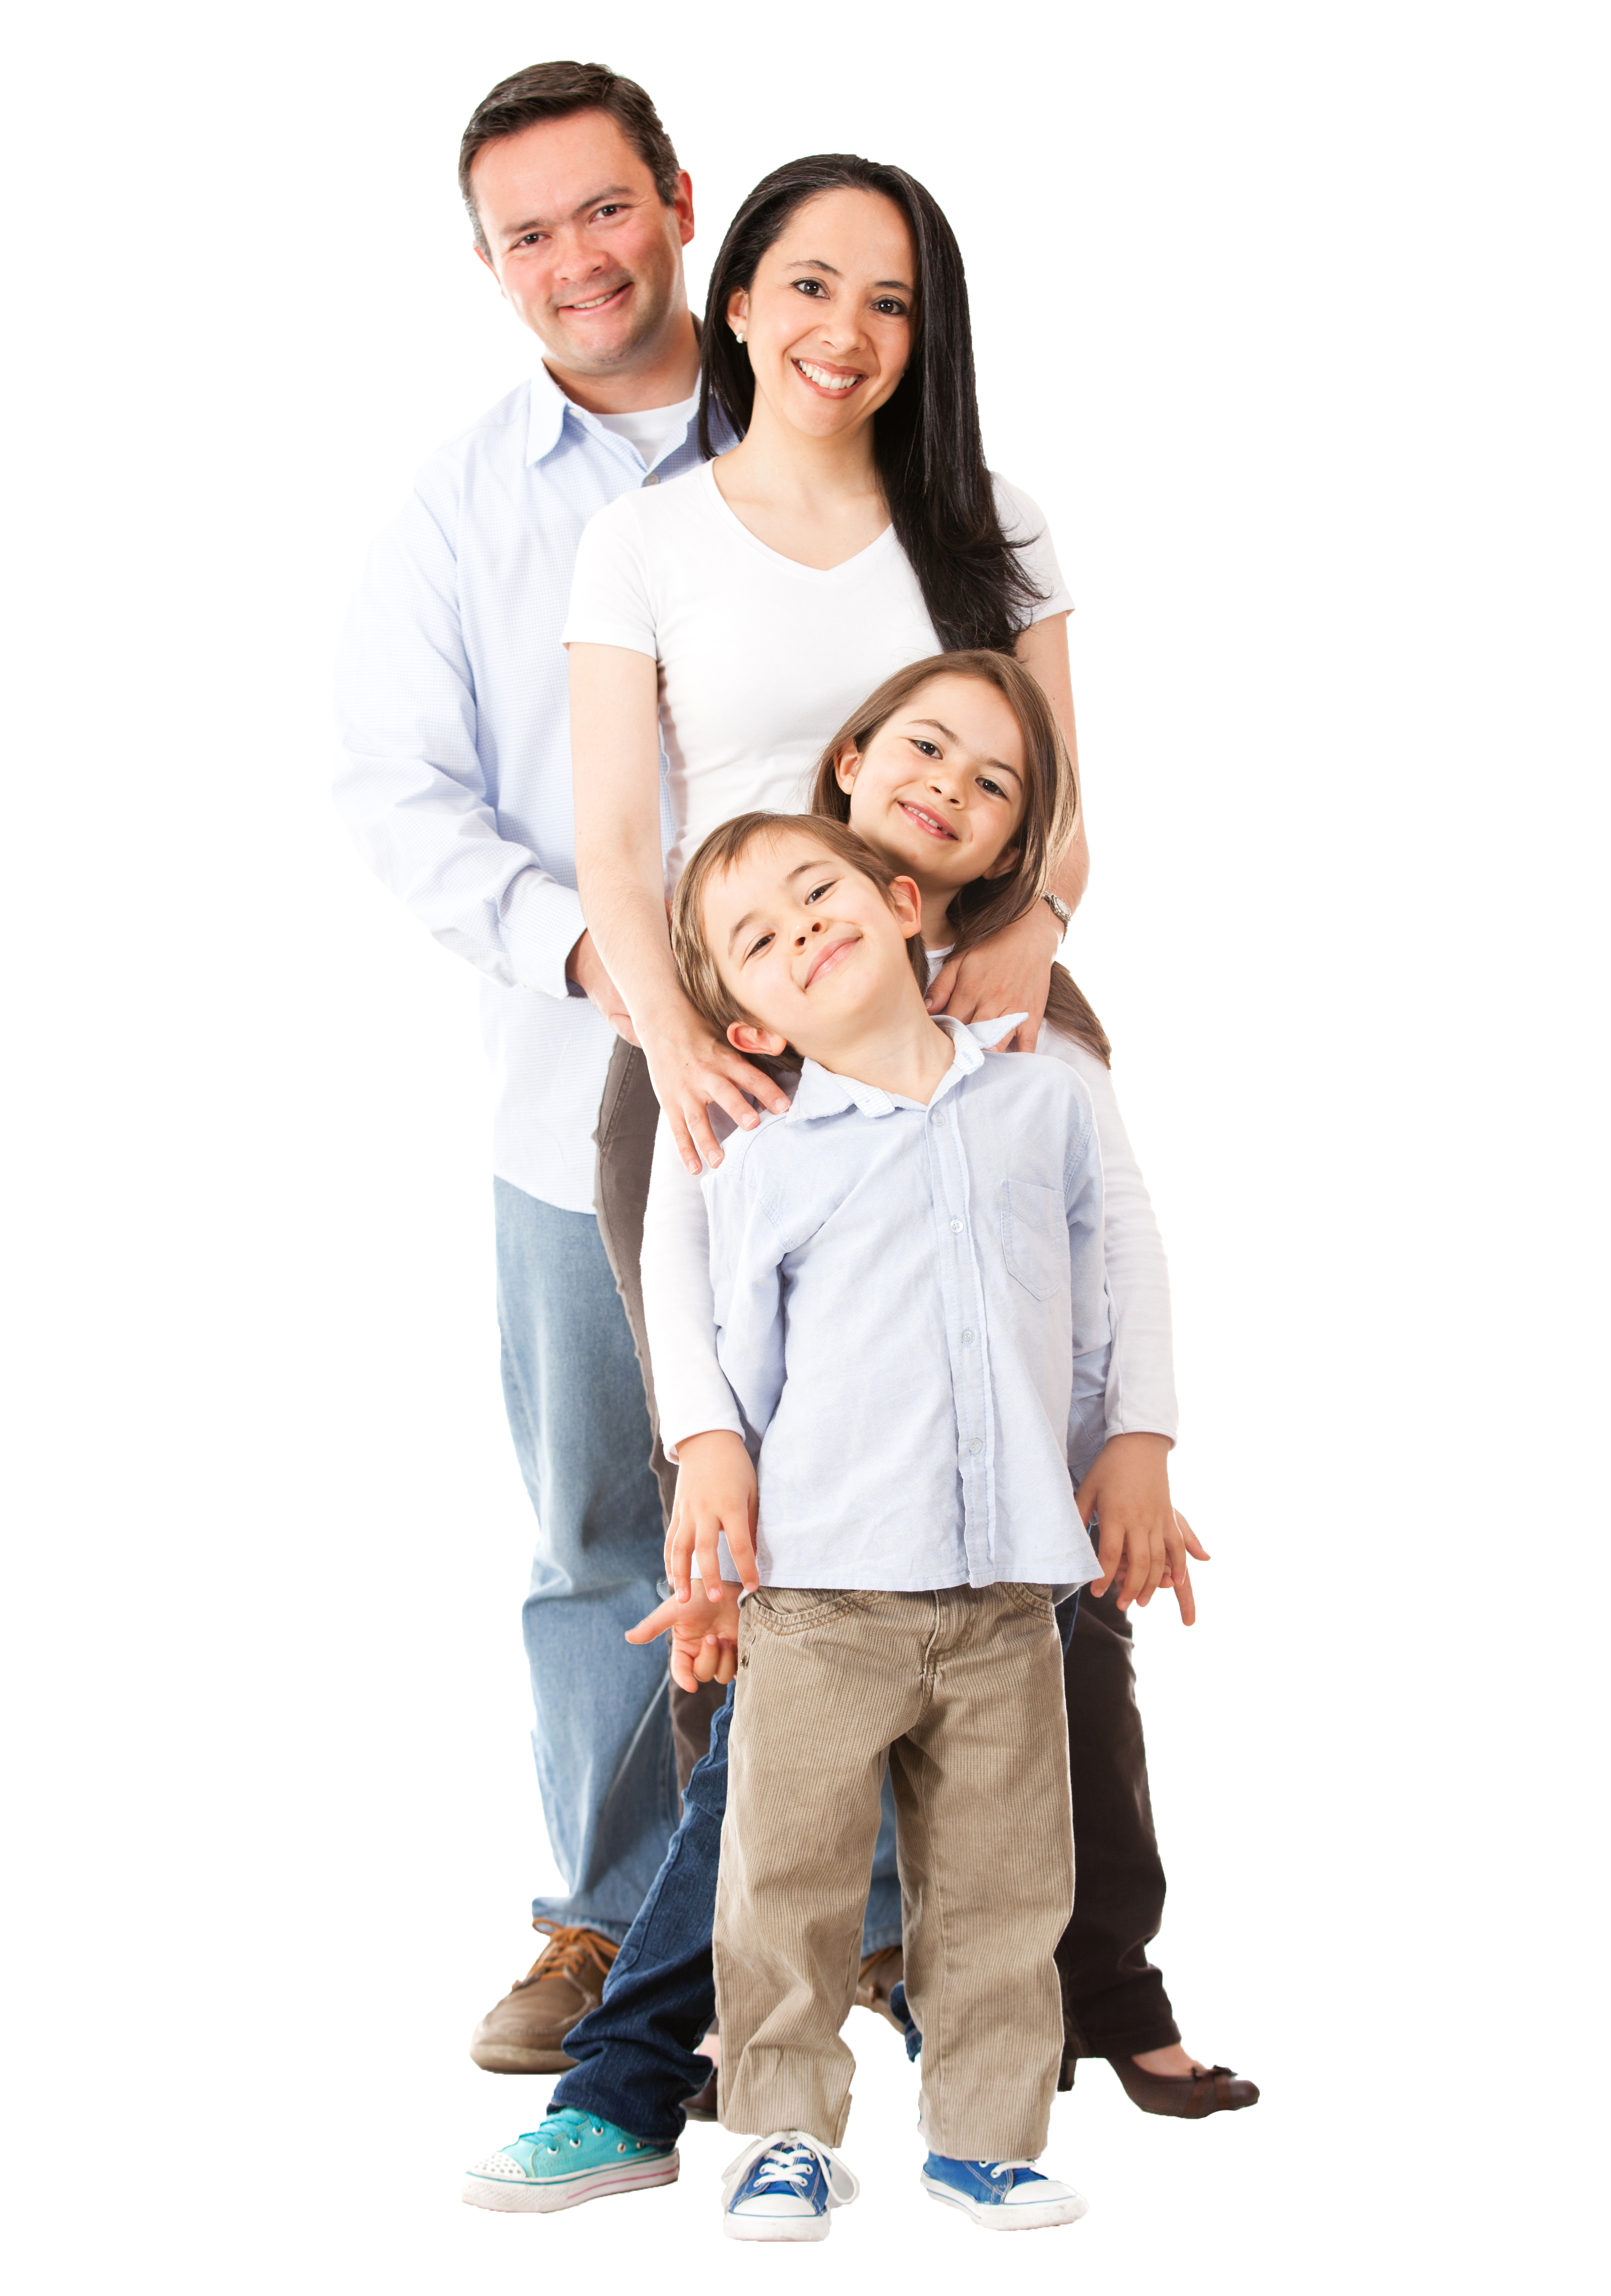 Happy Family Png image #40052